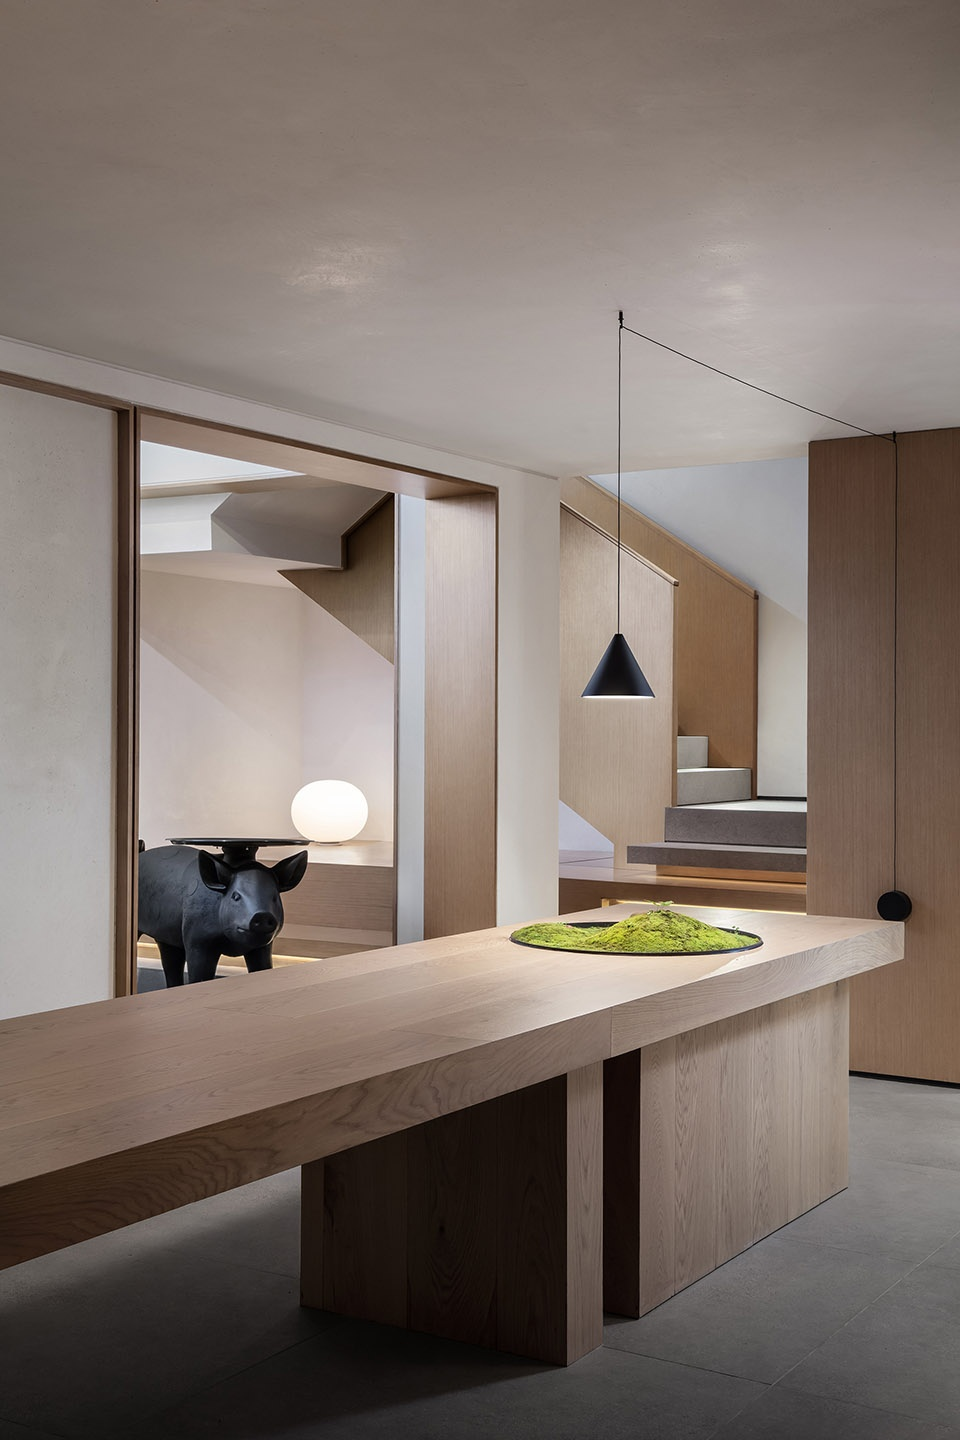 050-a-desired-home-china-by-liang-architecture-studio-960x1440.jpg